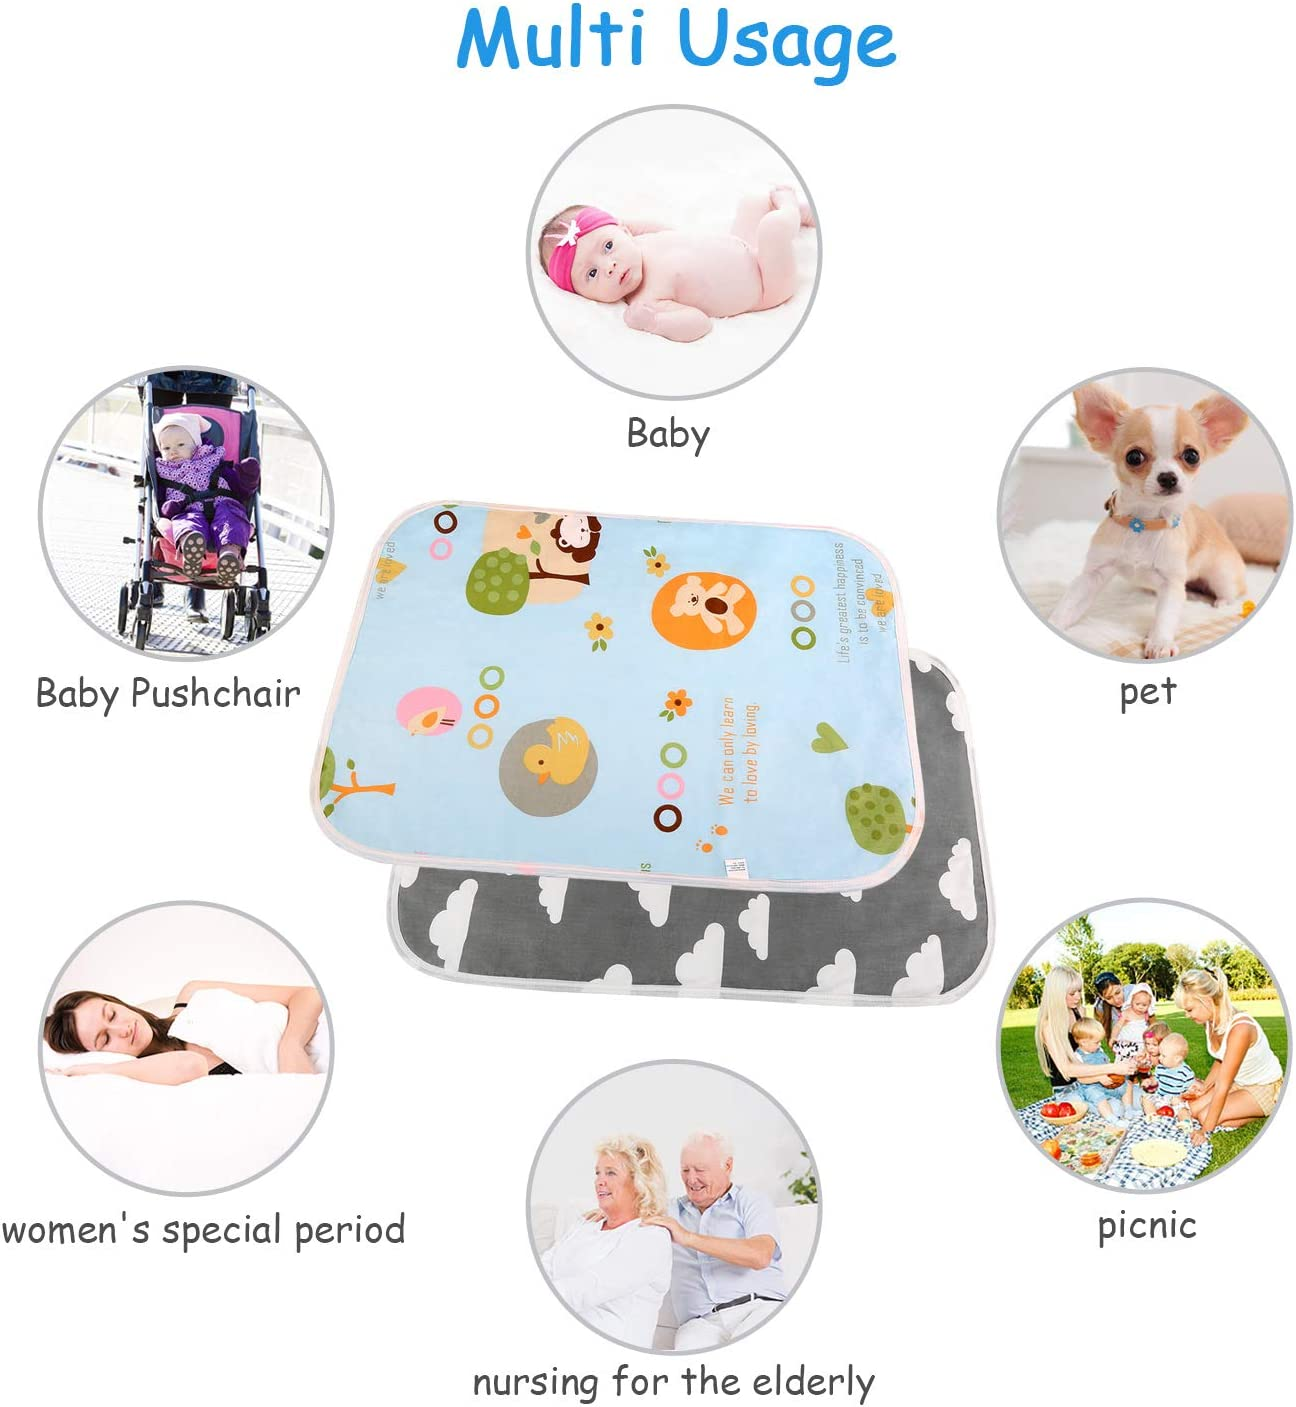 Newborn and Toddlers Waterproof Reusable Washable Nappy Mat for Home Outdoor Travel 2 Pack 50cmX70cm Portable Baby Diaper Changing Pad Grey /& Blue LEADSTAR Portable Change Mat